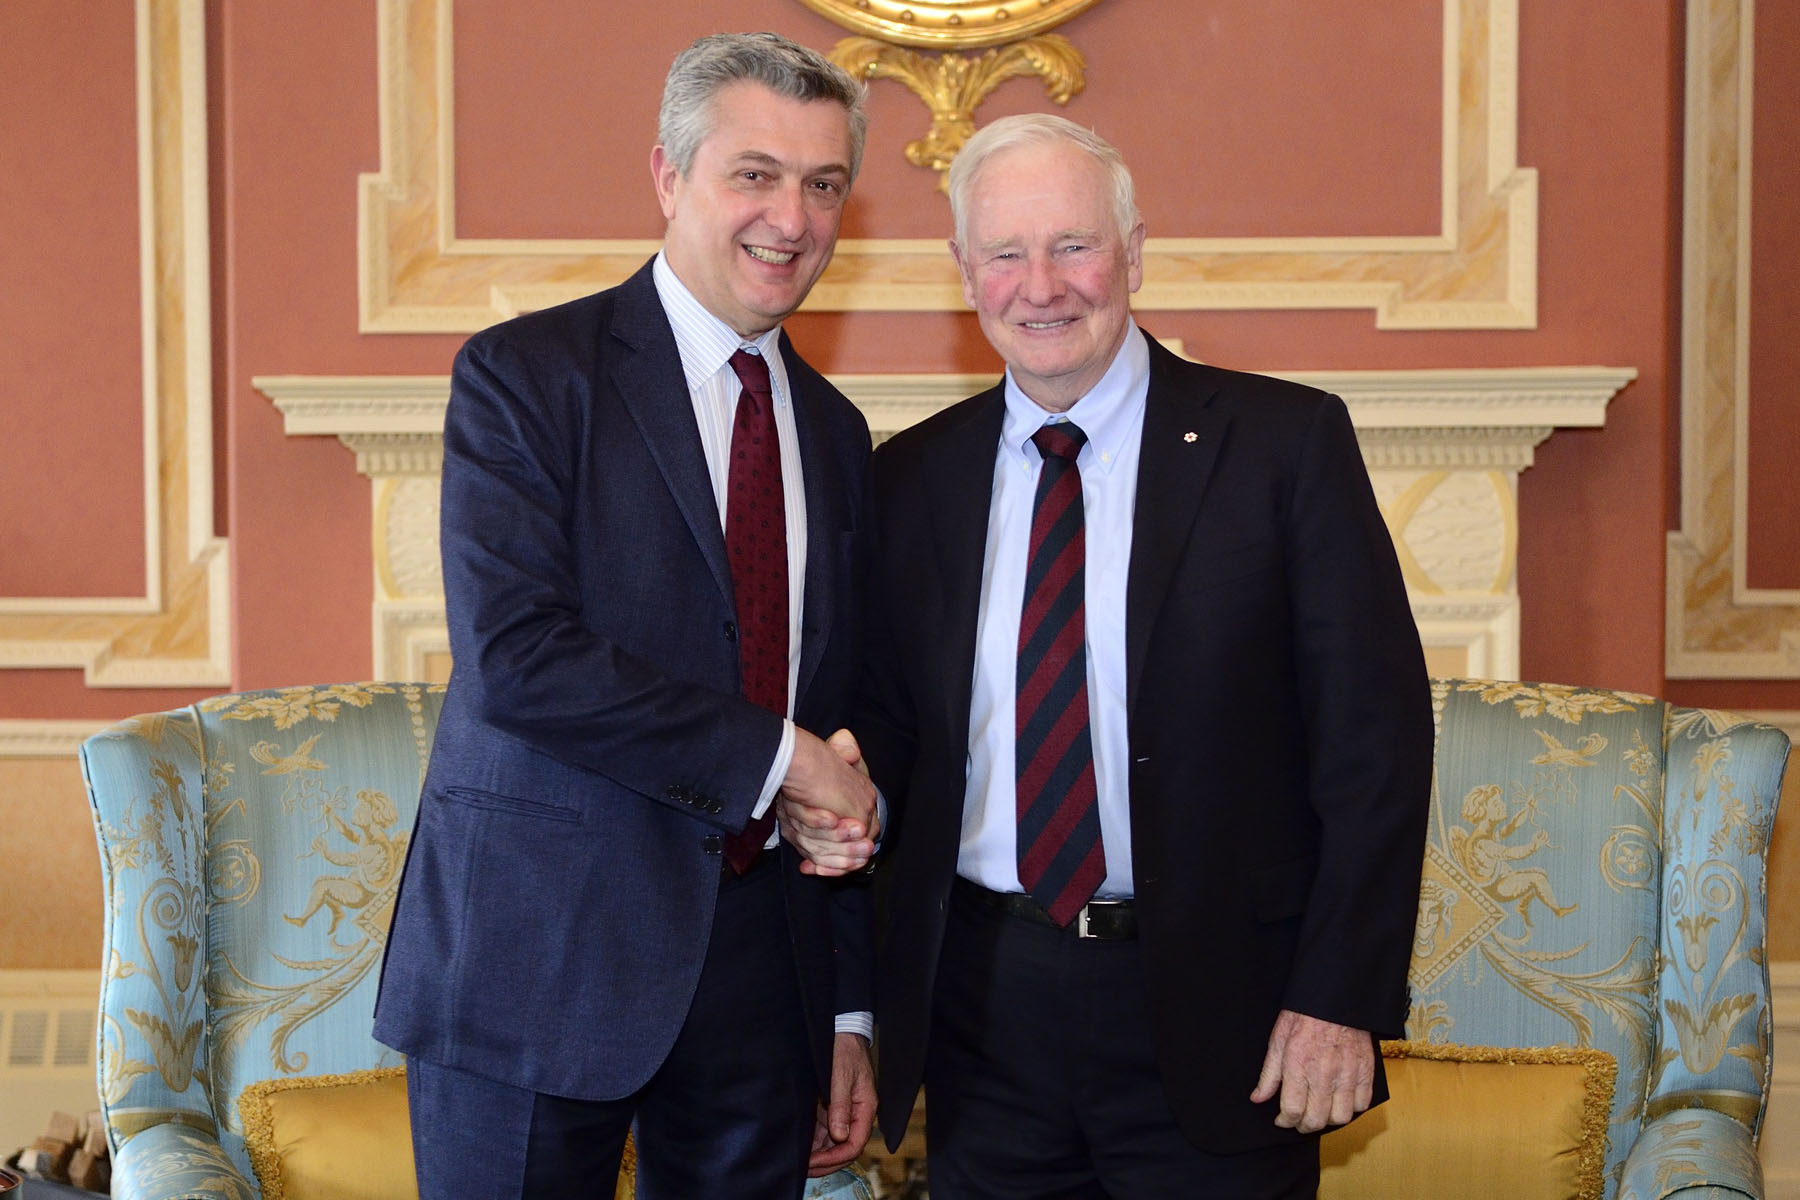 His Excellency the Right Honourable David Johnston, Governor General of Canada, met with His Excellency Filippo Grandi, United Nations High Commissioner for Refugees, at Rideau Hall.